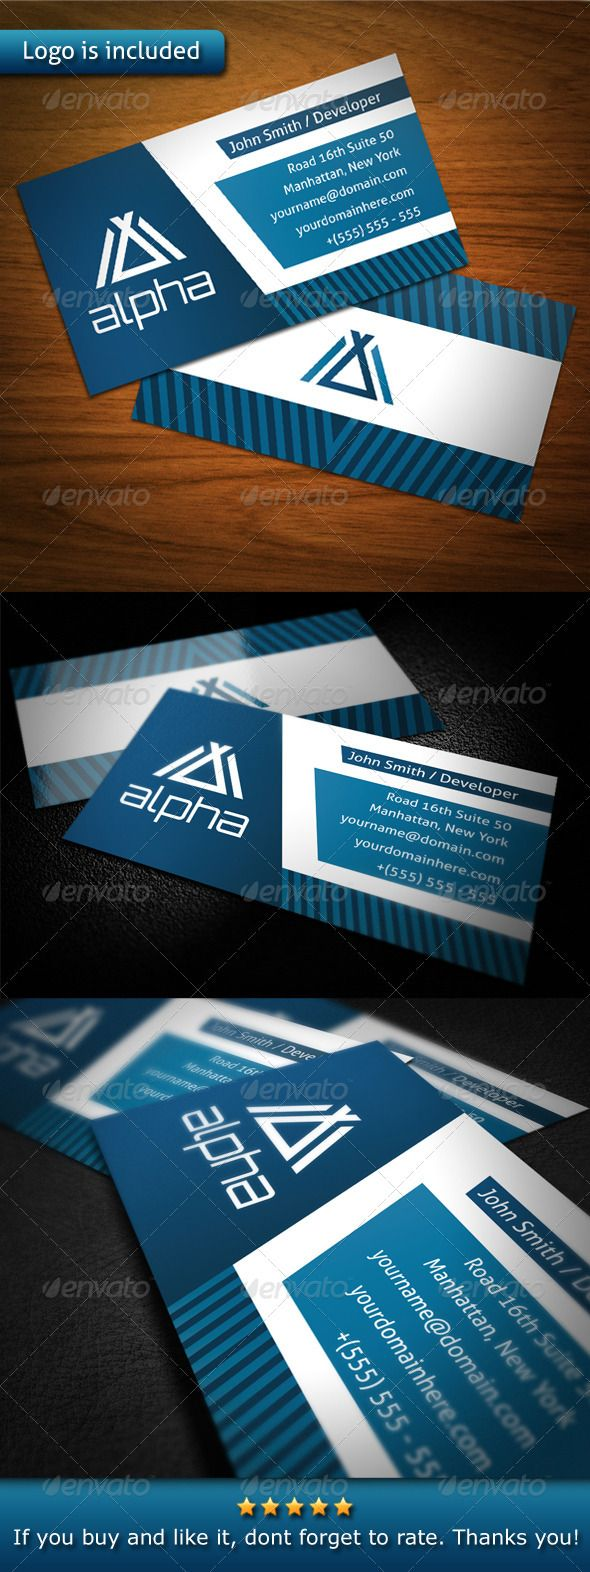 Best 25 business card design software ideas on pinterest black best 25 business card design software ideas on pinterest black business card rocket software and logo software magicingreecefo Gallery